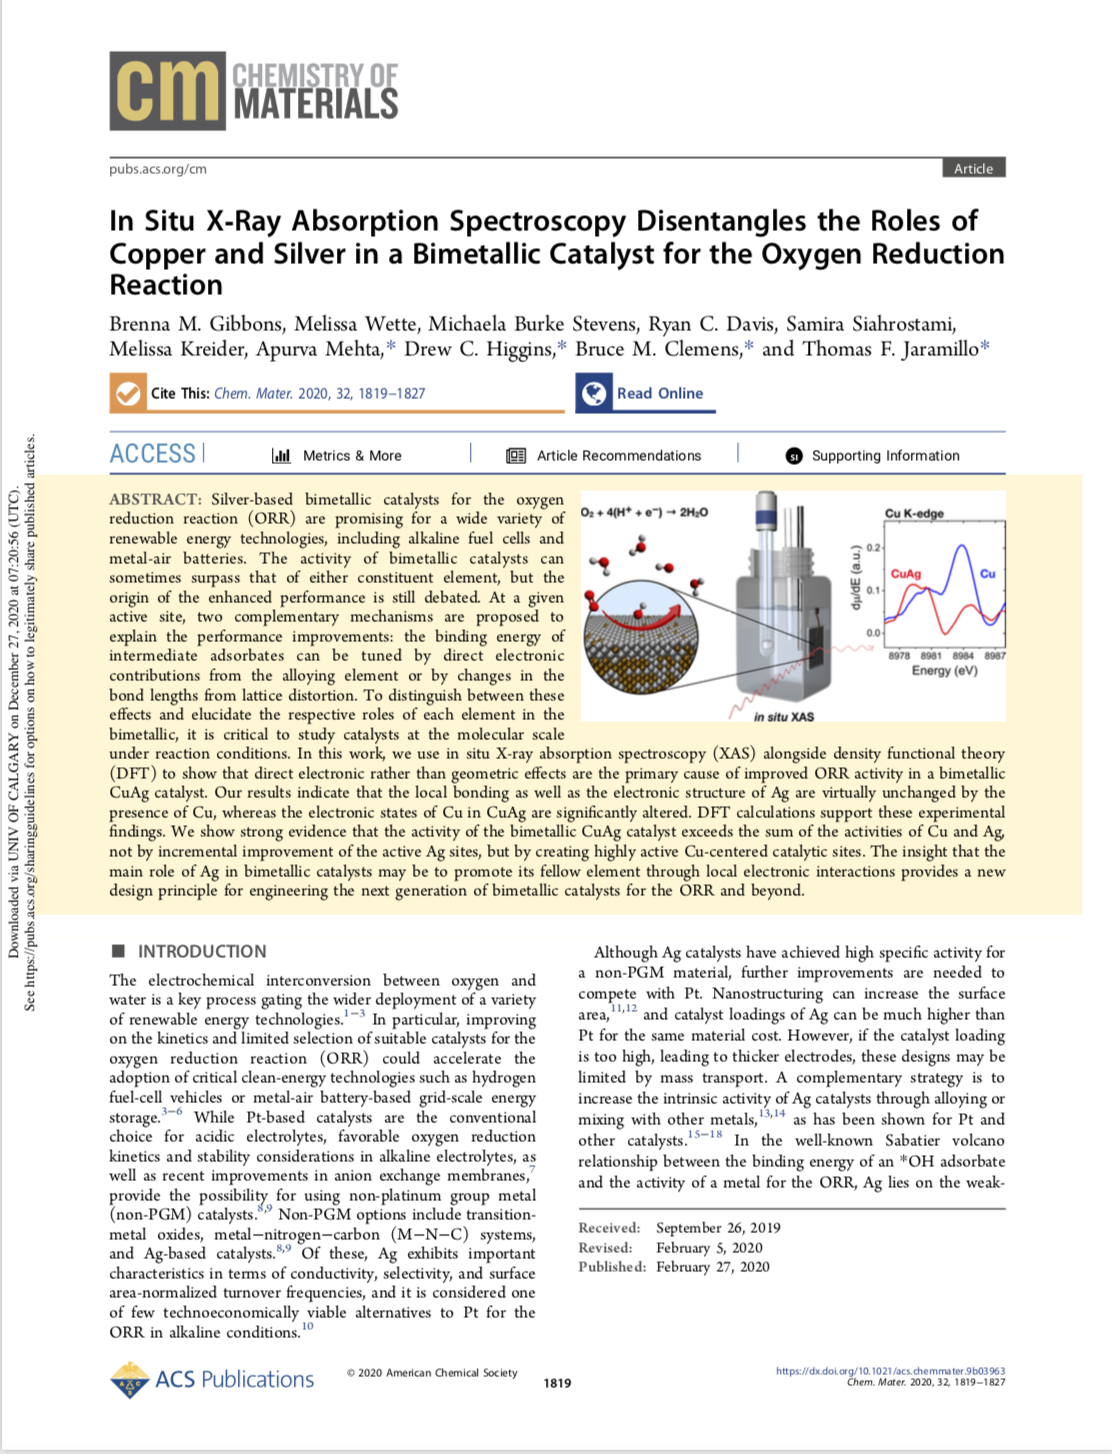 In Situ X‑Ray Absorption Spectroscopy Disentangles the Roles of Copper and Silver in a Bimetallic Ca